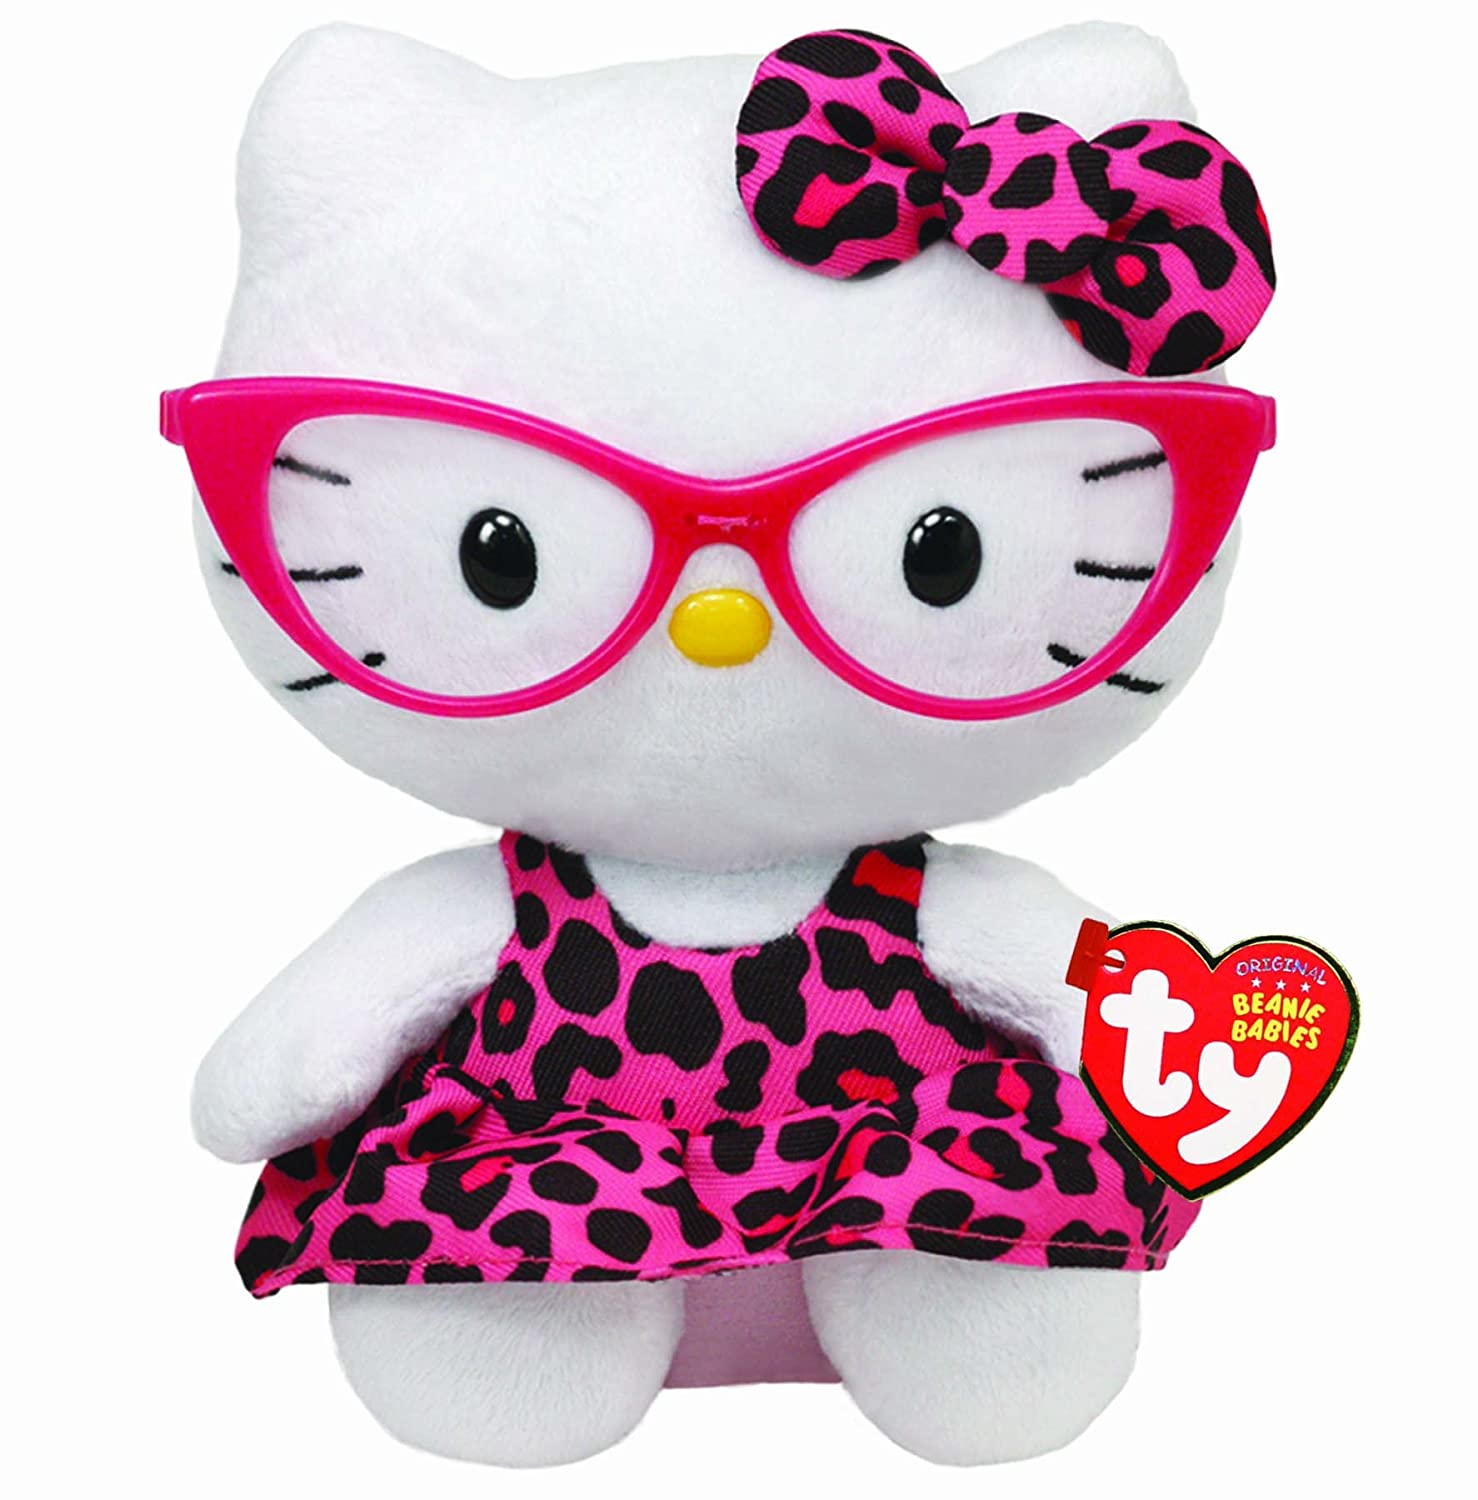 Amazon.com  Ty Beanie Baby Hello Kitty Plush -Pink Leopard Nerd with  Glasses  Toys   Games 2a138203a3cb